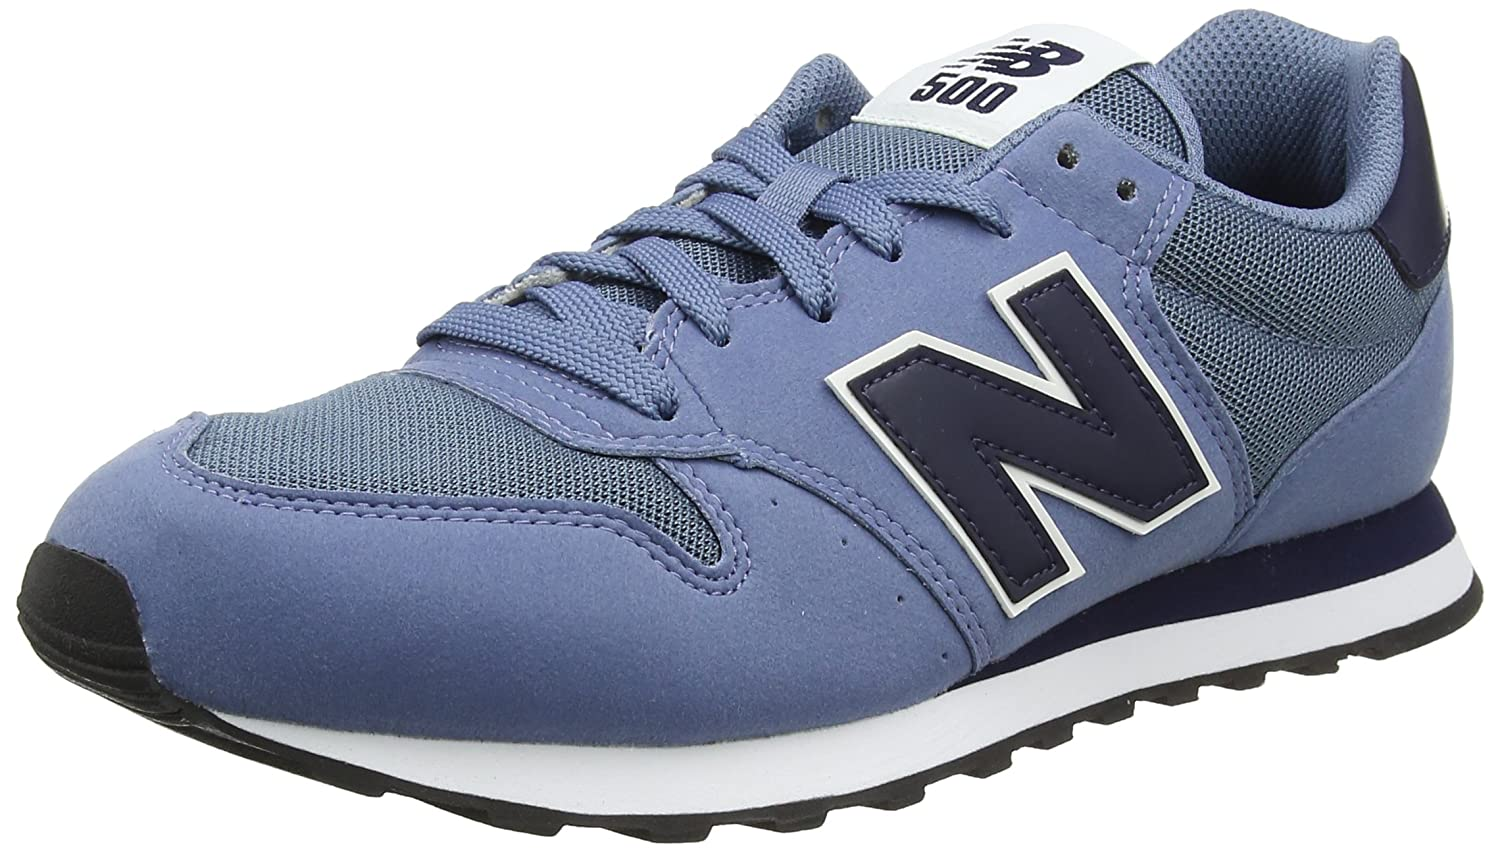 New Balance Men's Gm500v1 Trainers: Amazon.co.uk: Shoes & Bags